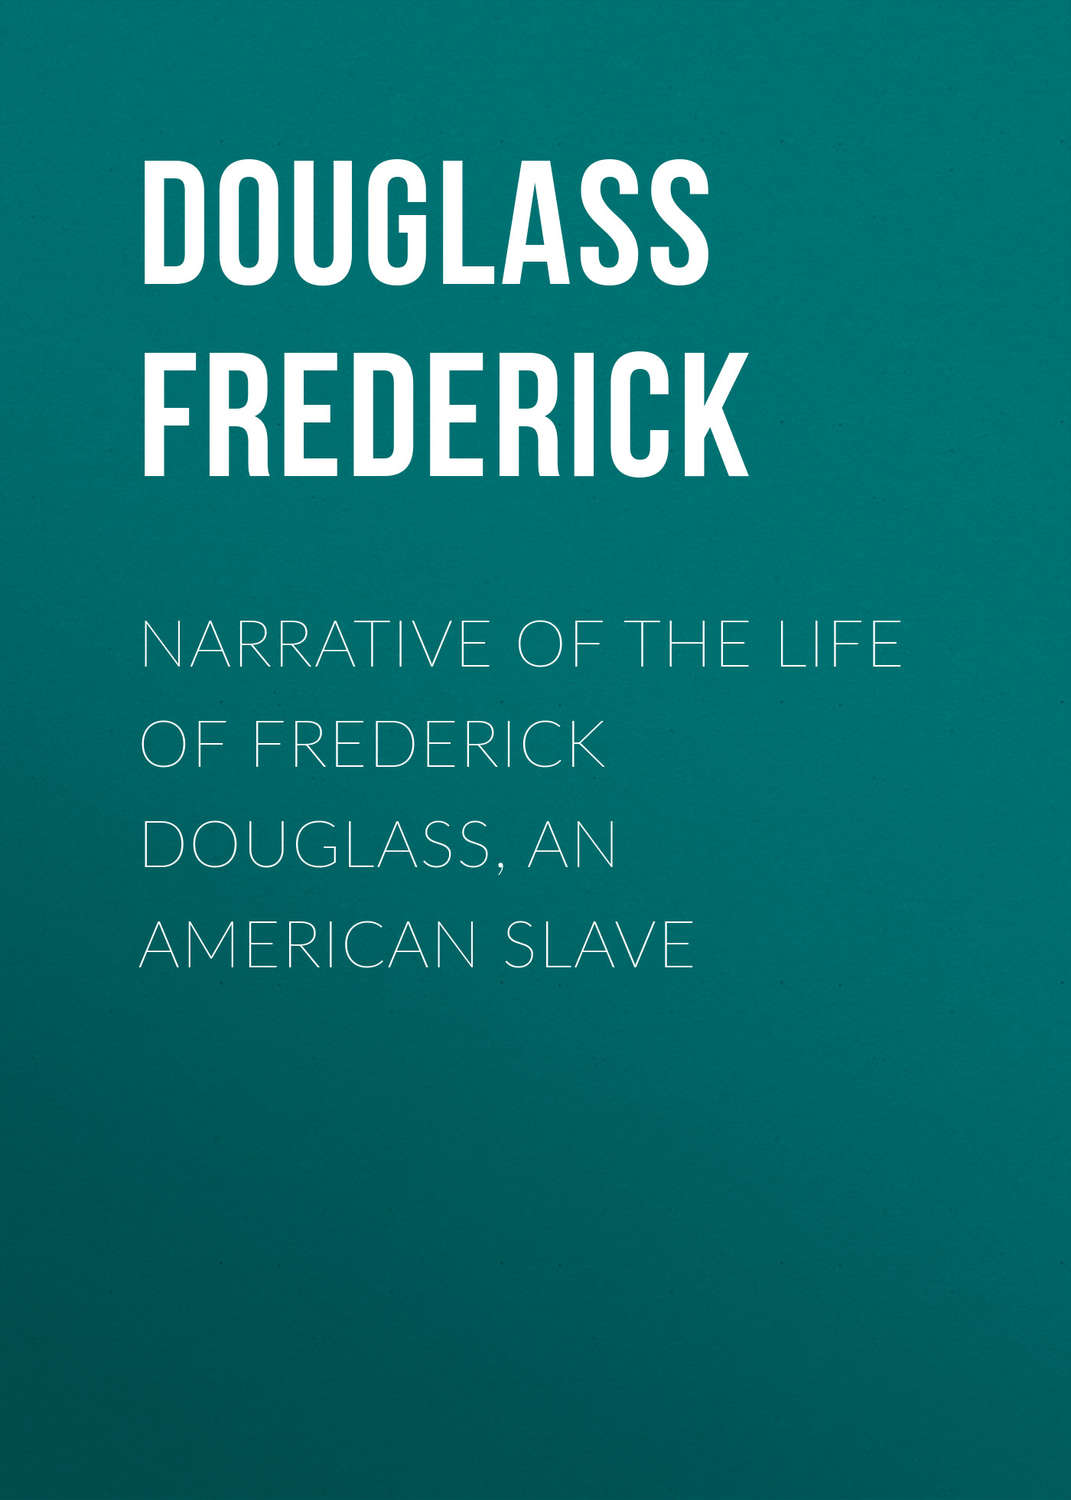 the slavery and perseverance of frederick douglass in the narrative of the life of frederick douglas